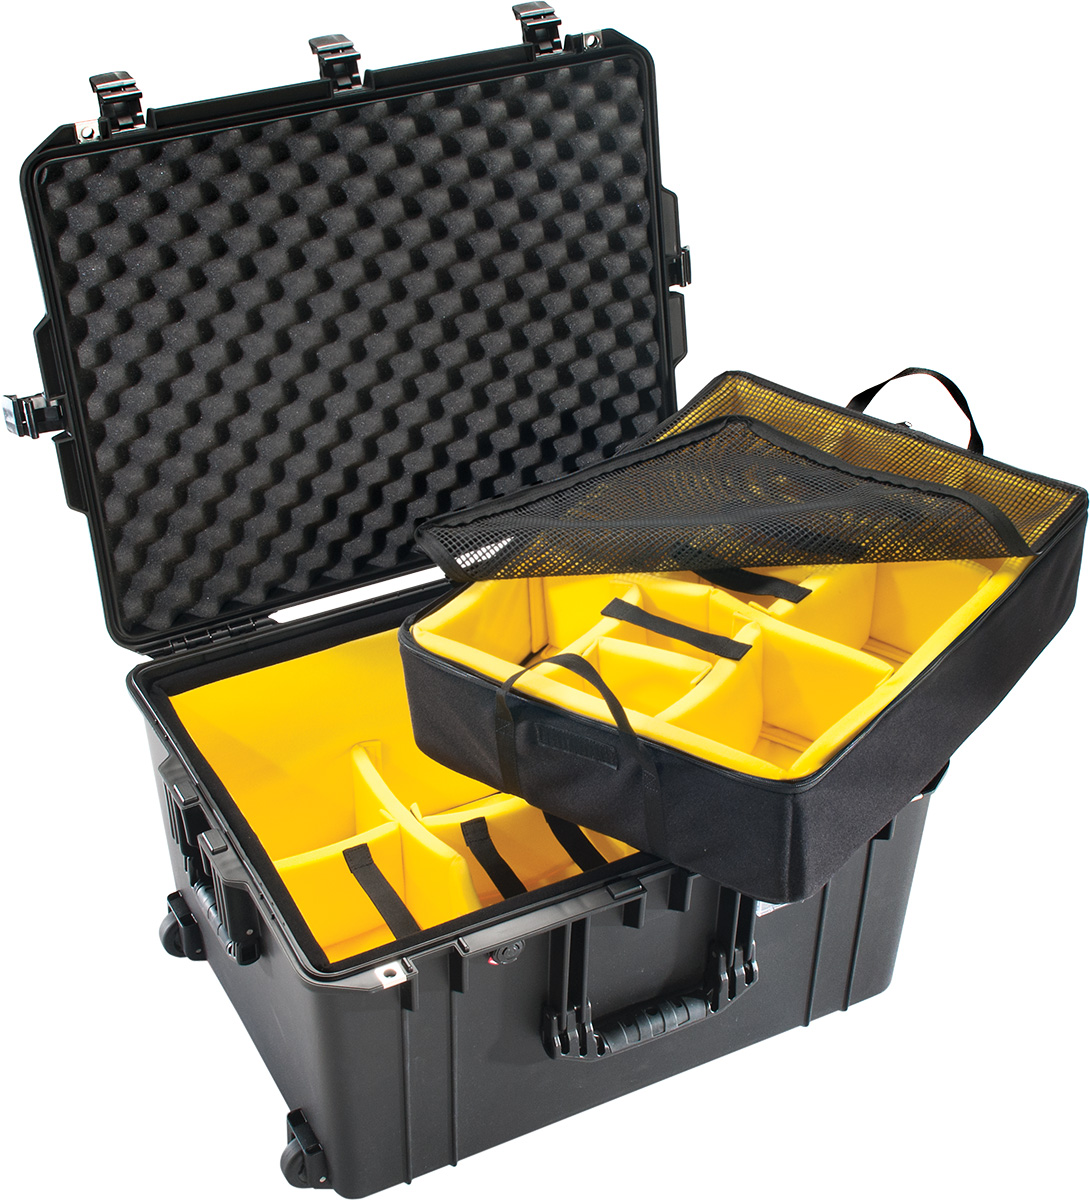 67.6 Kg To Lbs Pretty 1637 protector - large case | air case | pelican consumer